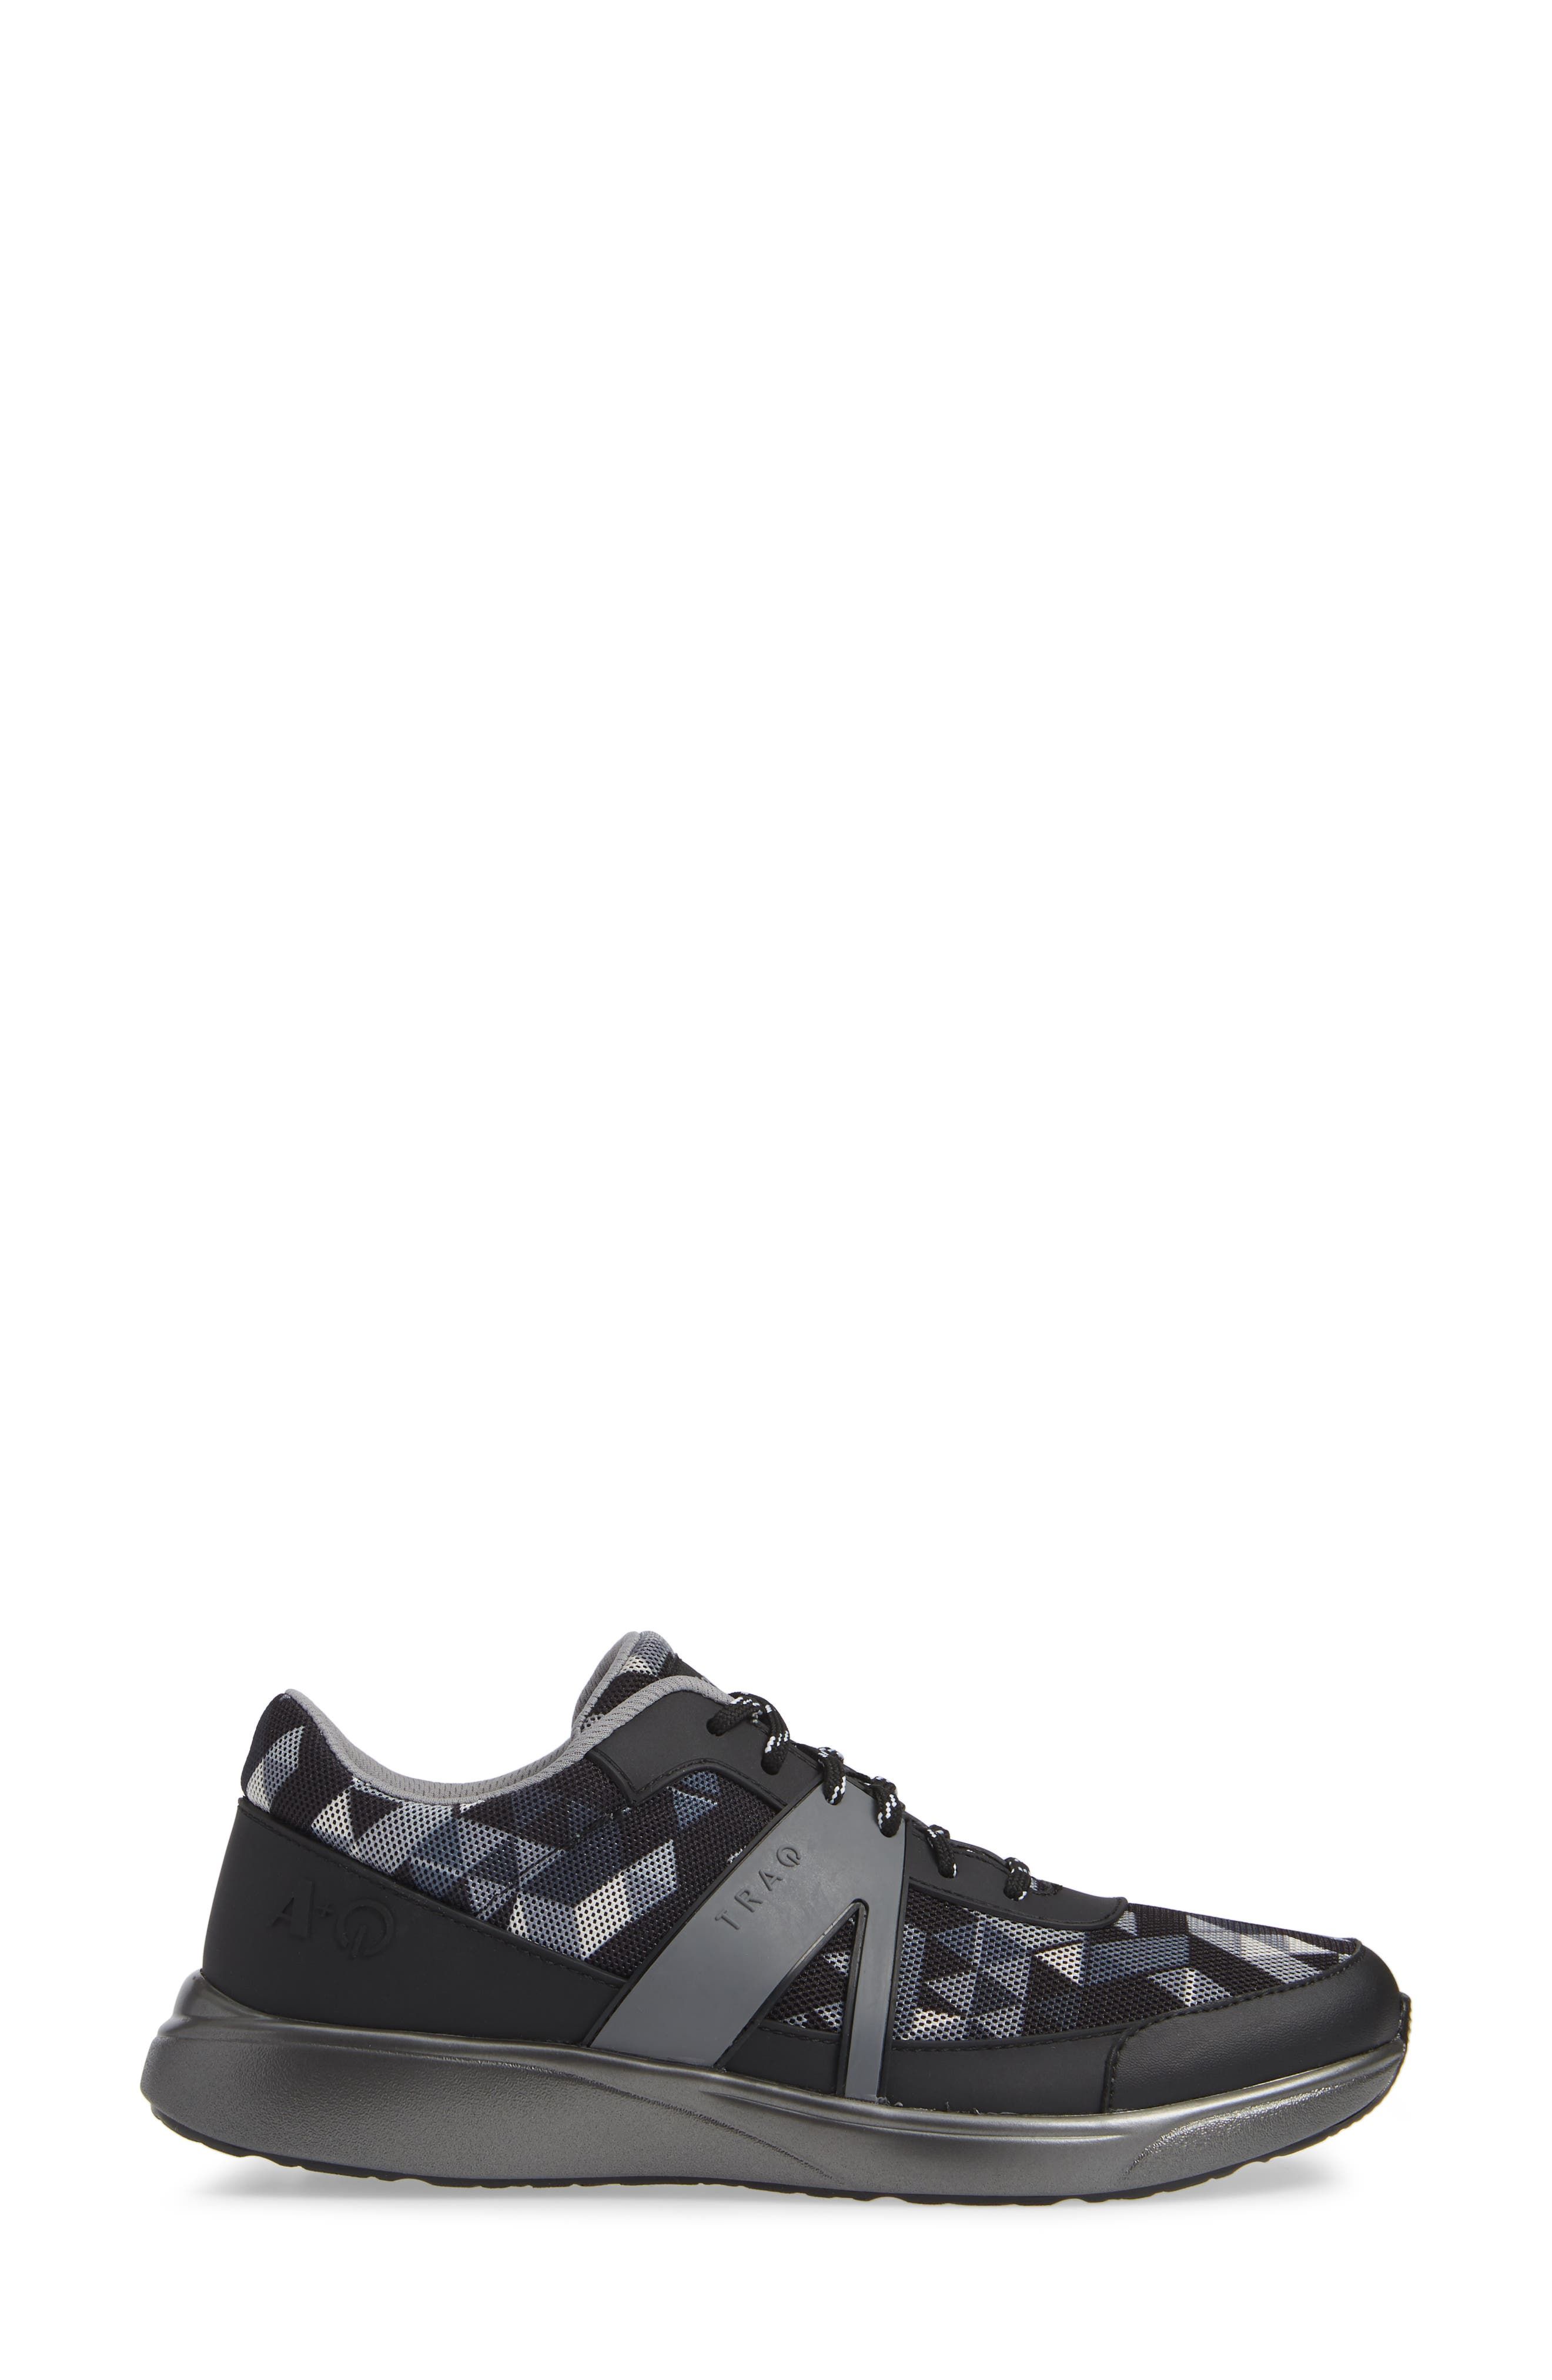 ALEGRIA, Qarma Sneaker, Alternate thumbnail 3, color, BLACK ANGLE LEATHER